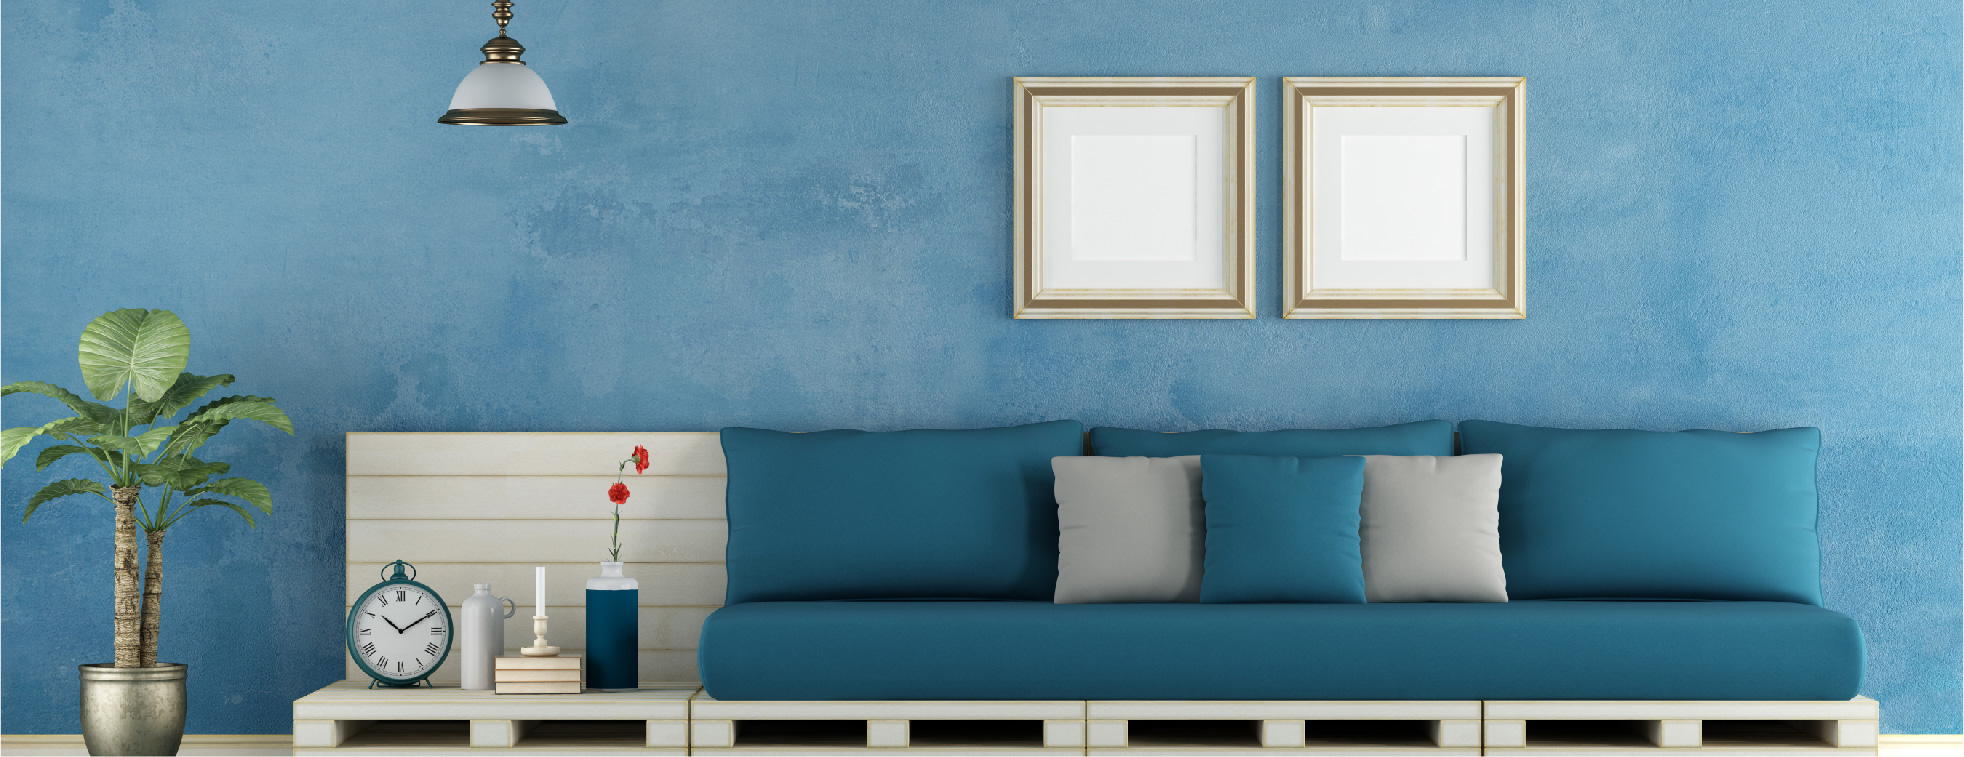 A blue plaster walll with blue and gray furniture